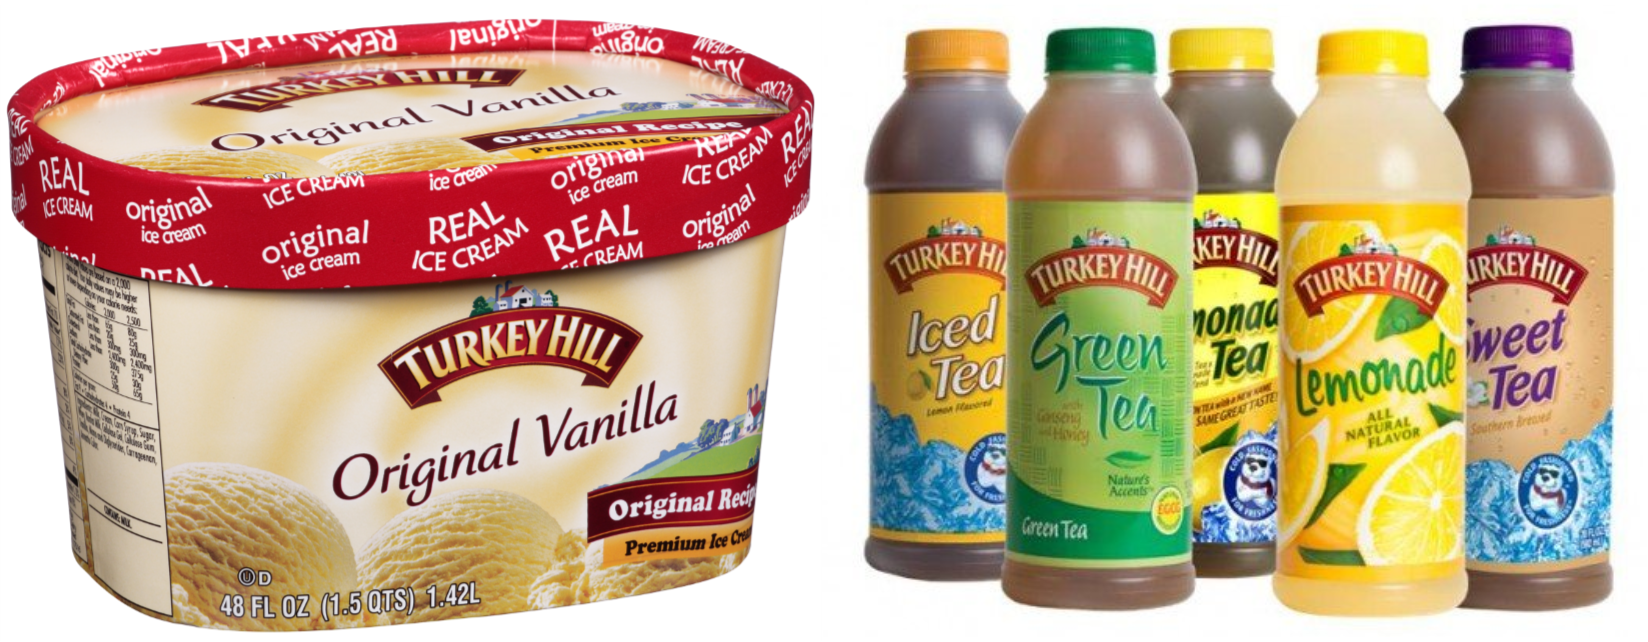 Peak Rock Buys Kroger's Turkey Hill - Private Equity Professional